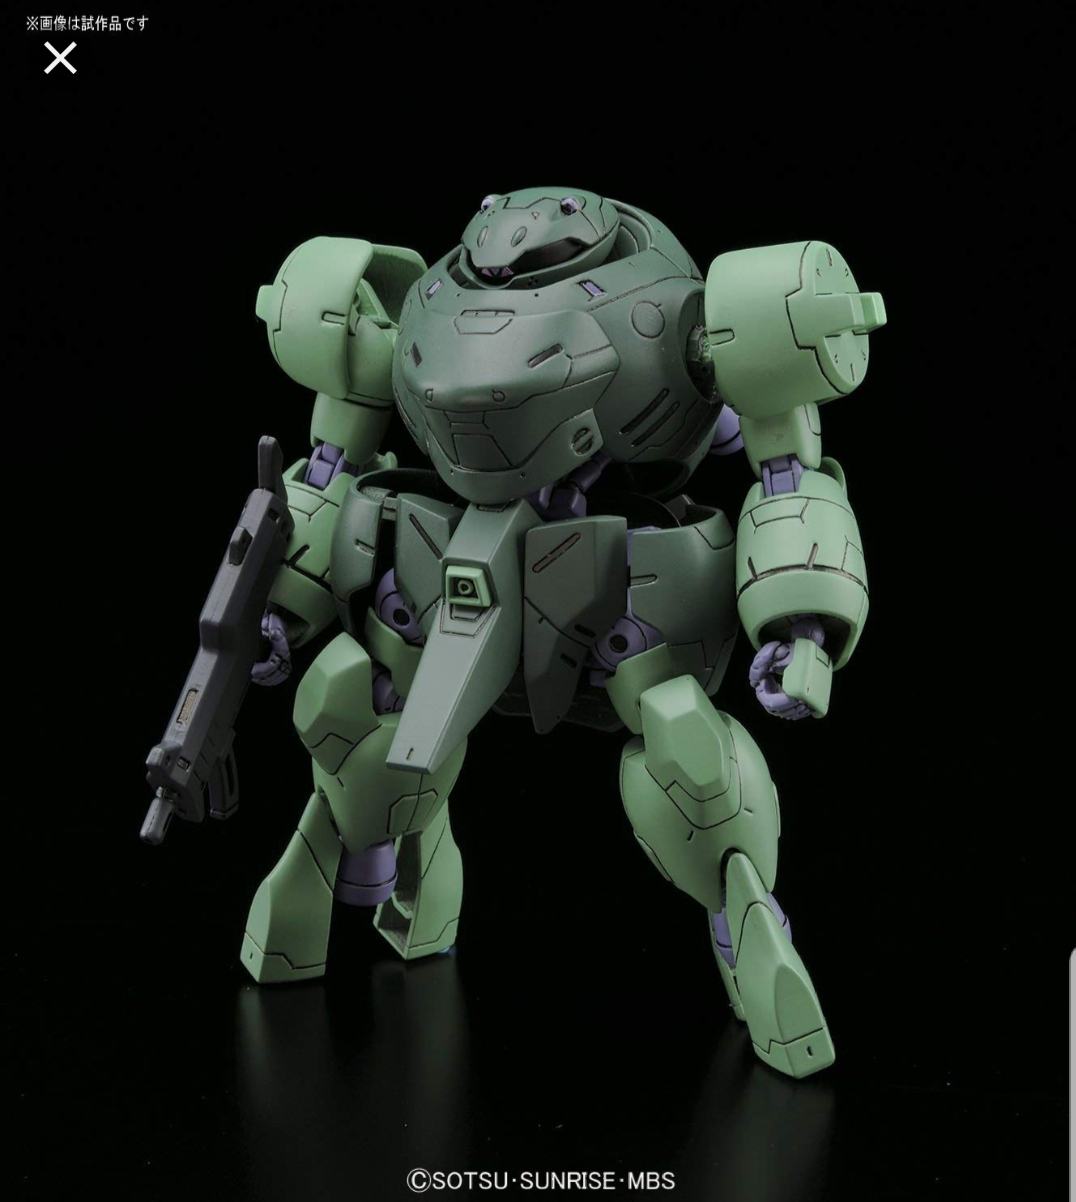 Here's my next kit it's coming in a couple of weeks